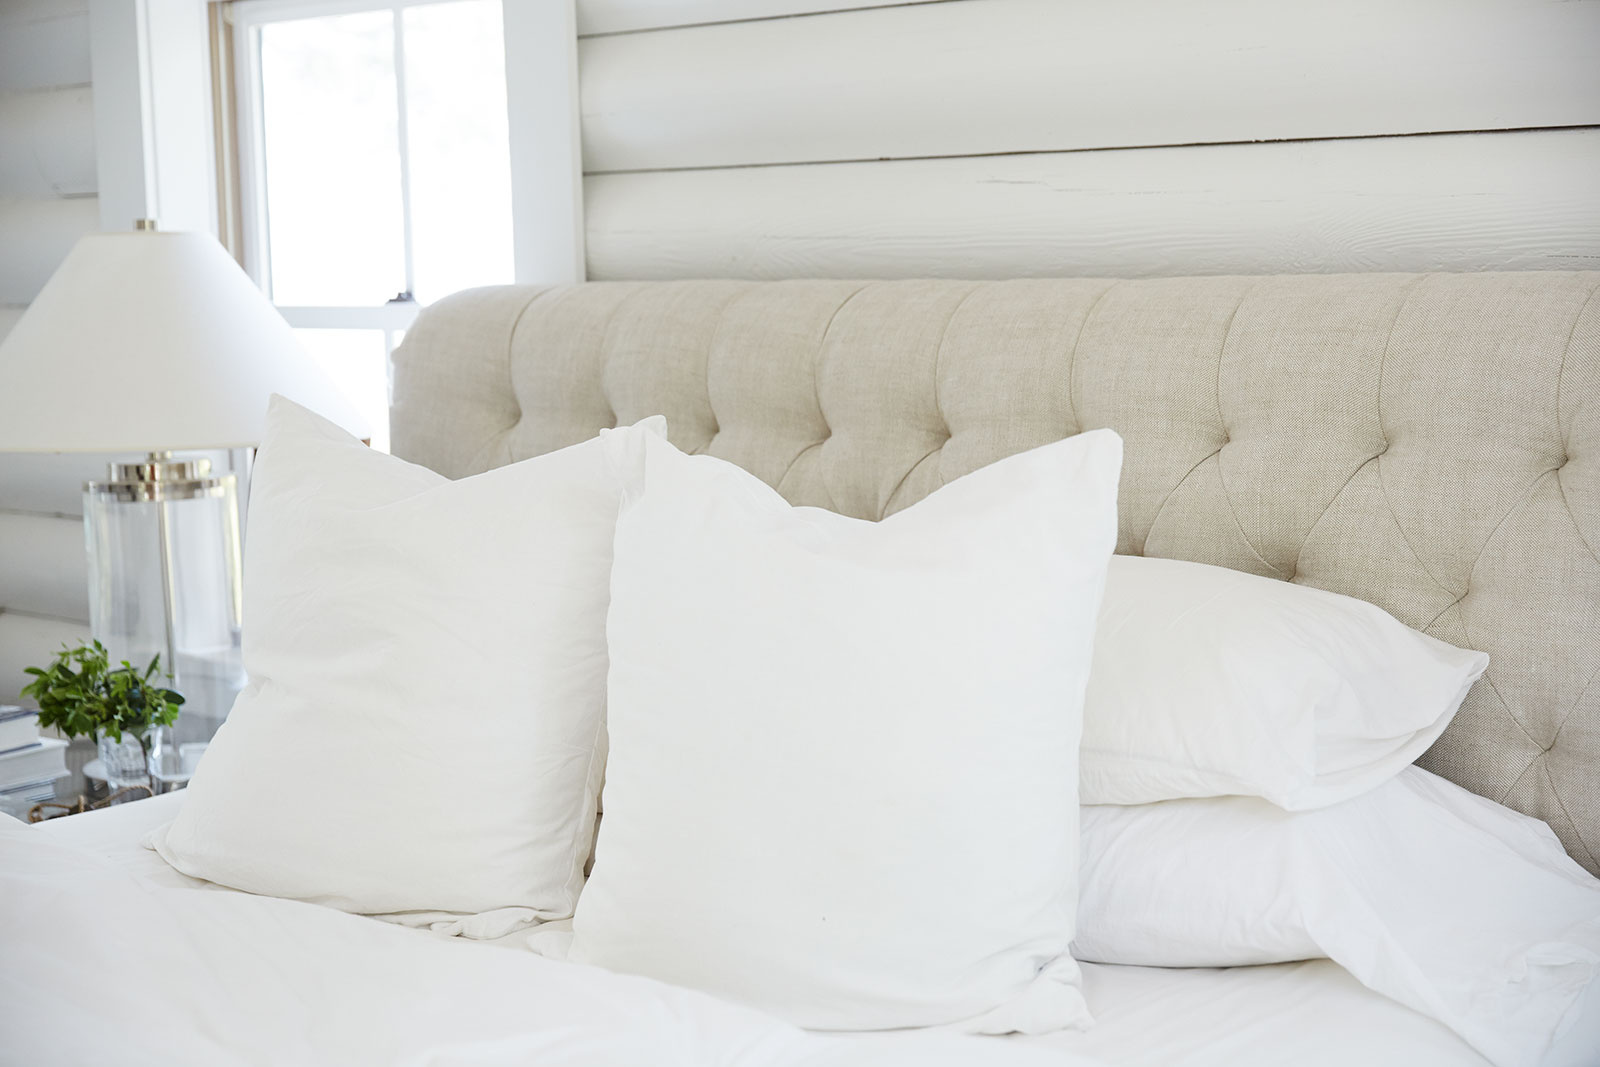 Bed with pillows  | Trinette+Chris Photographers